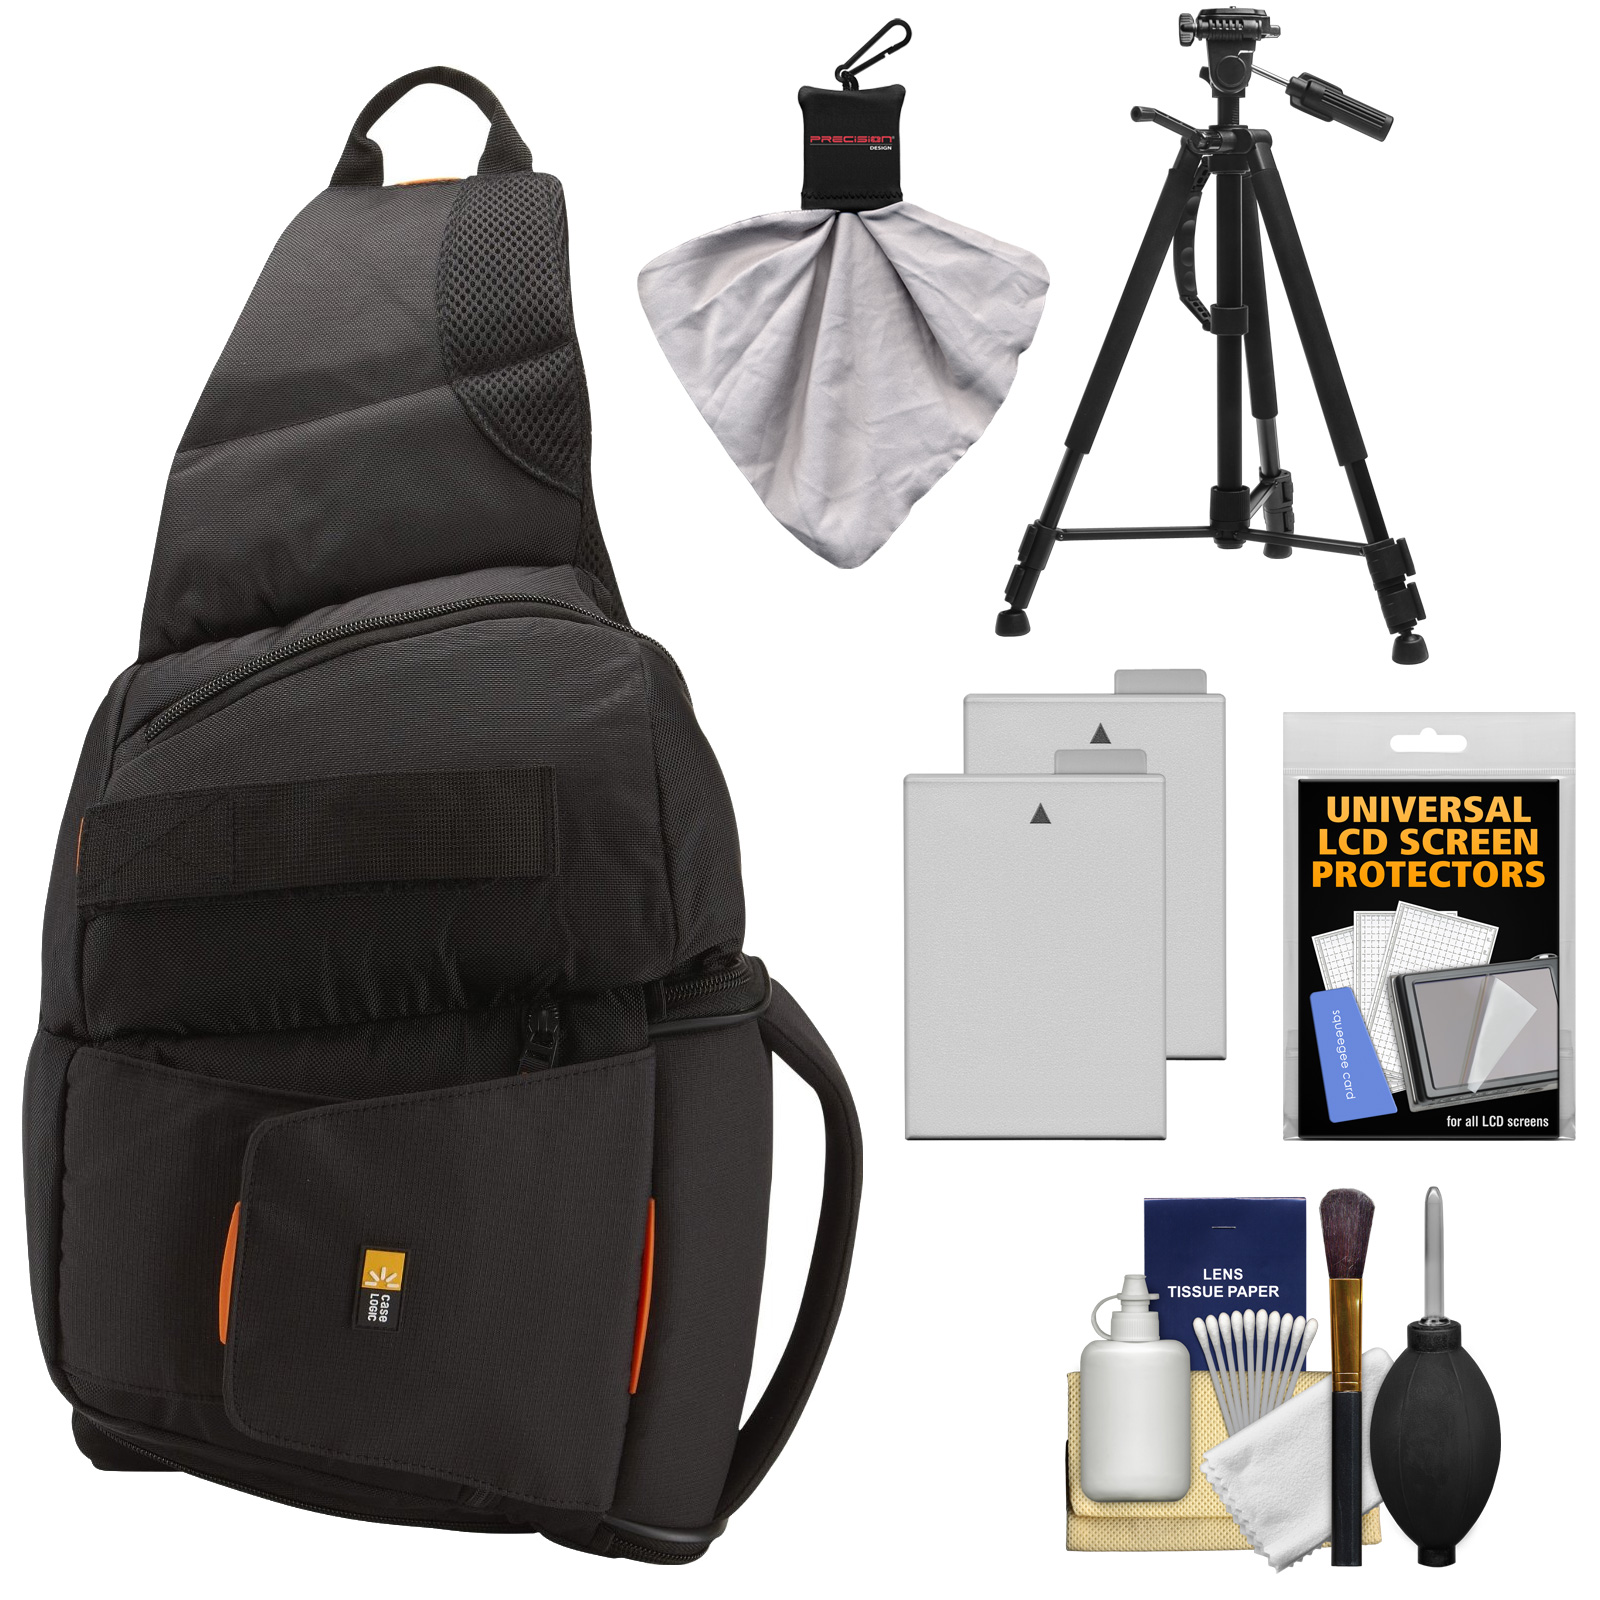 Case Logic Digital SLR Sling Camera Bag/Case (Black) (SLRC-205) + (2) LP-E8 Batteries + Tripod + Accessory Kit for Canon EOS Rebel T2i, T3i & T4i